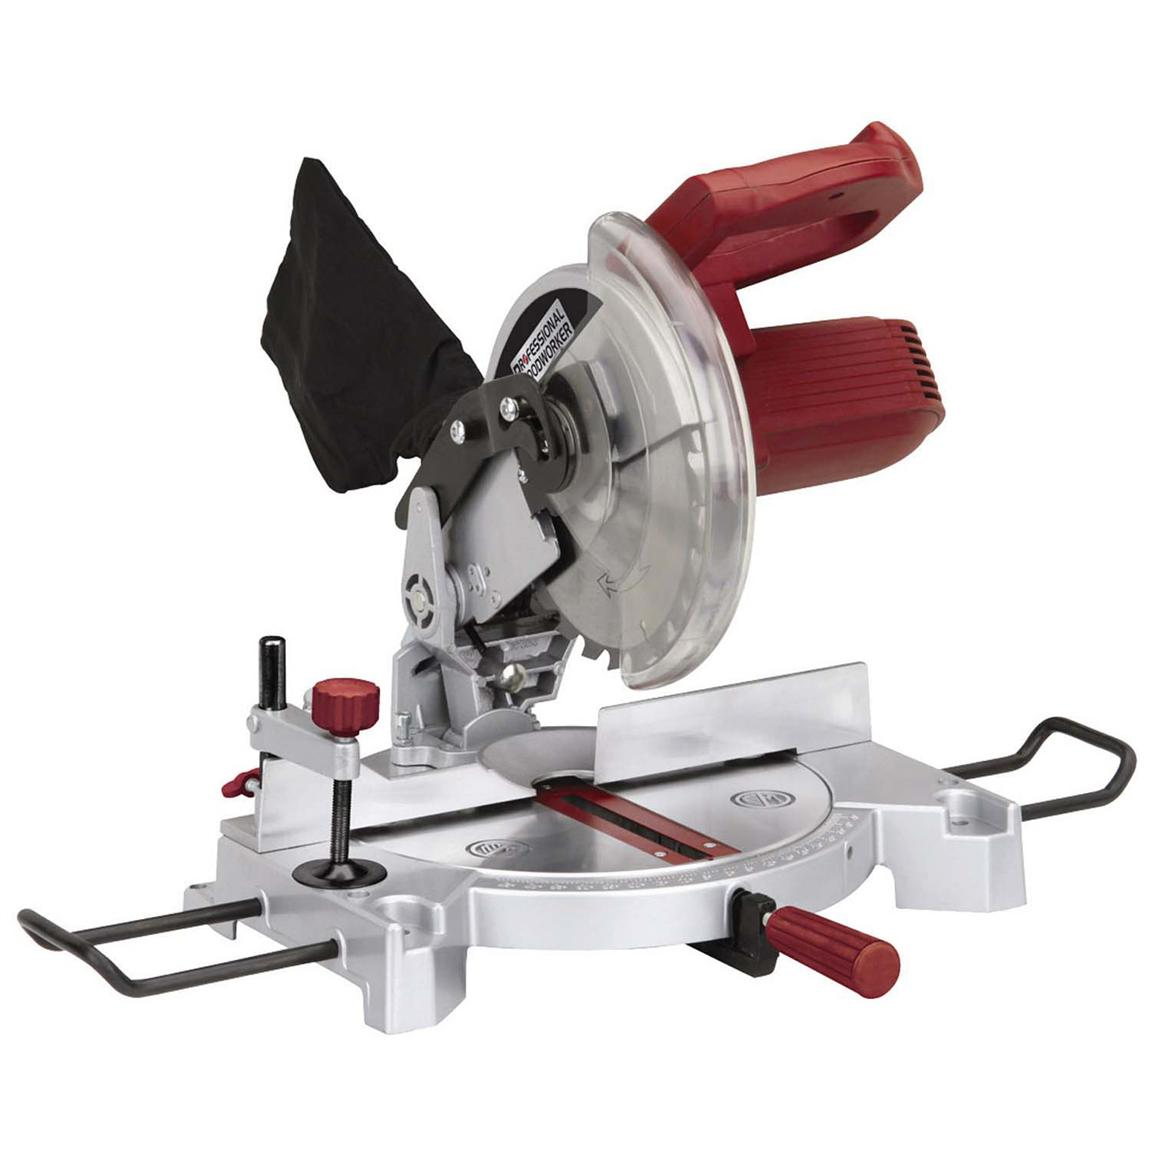 Professional Woodworker 8 1/4 inch Compound Miter Saw with Laser Guide